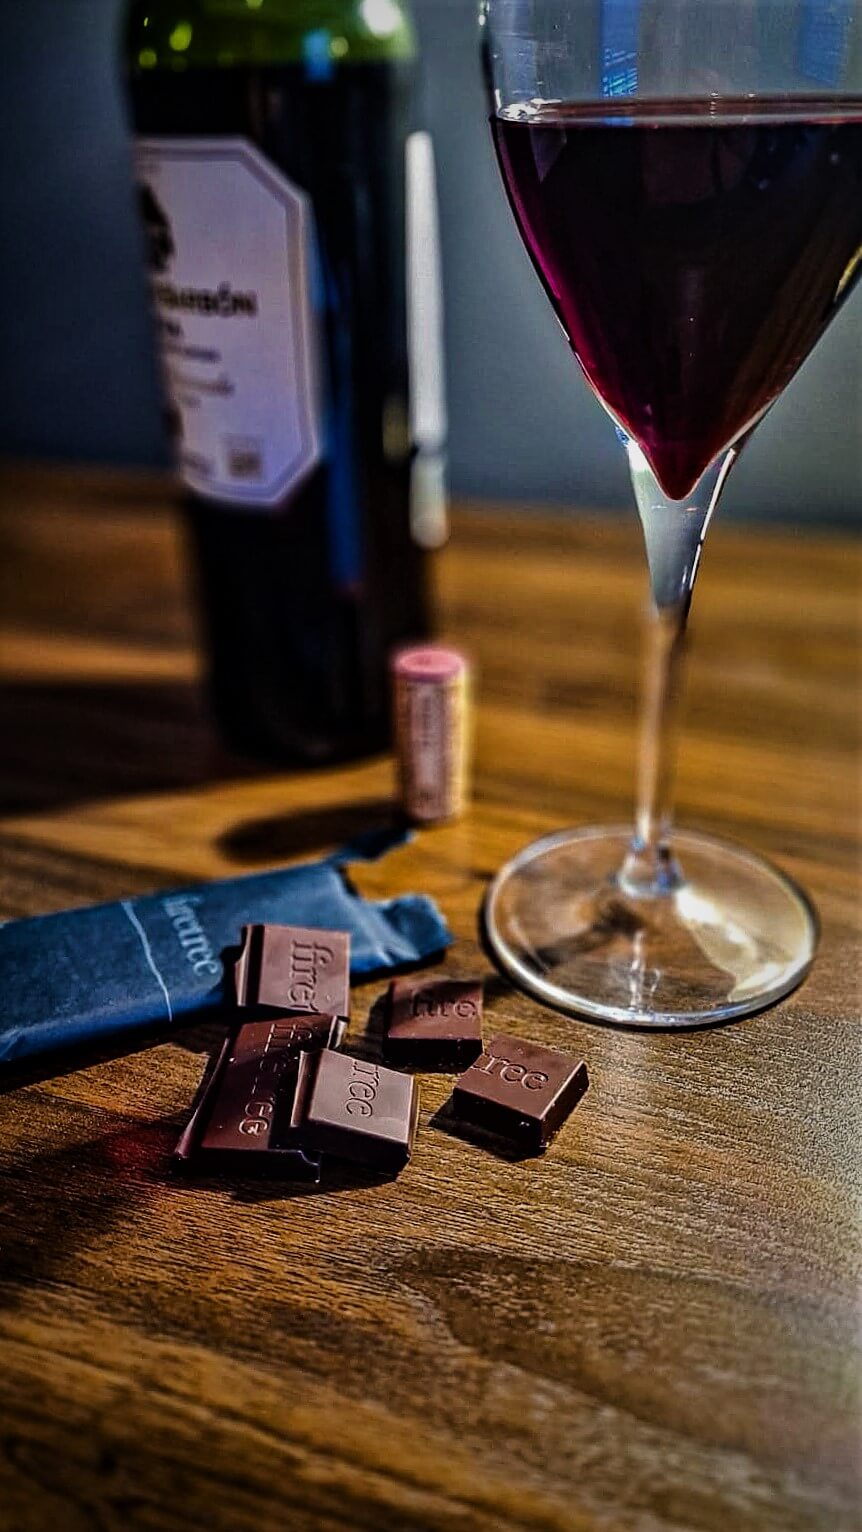 Luxury Chocolate and Wine - Firetree 25g bar